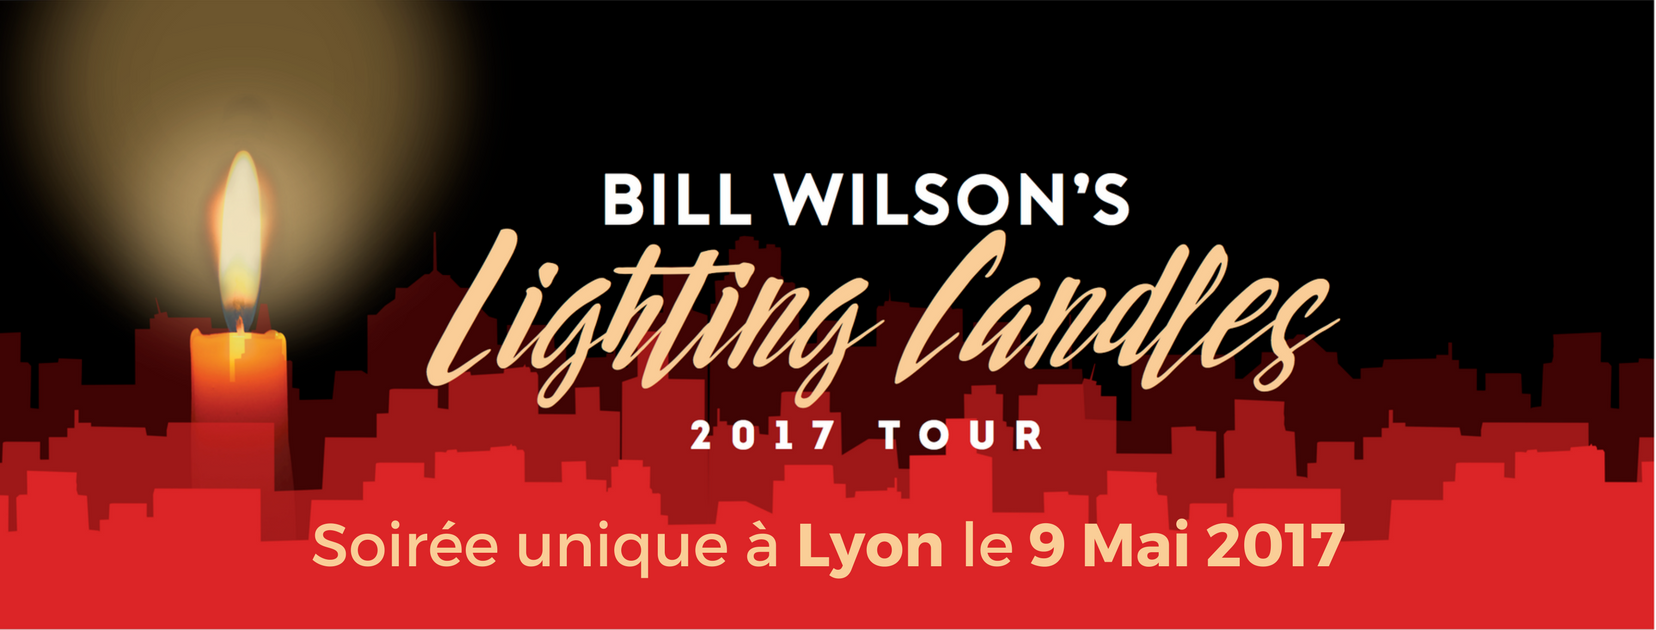 Bill Wilson Lighting Candles Lyon 9 mai 2017